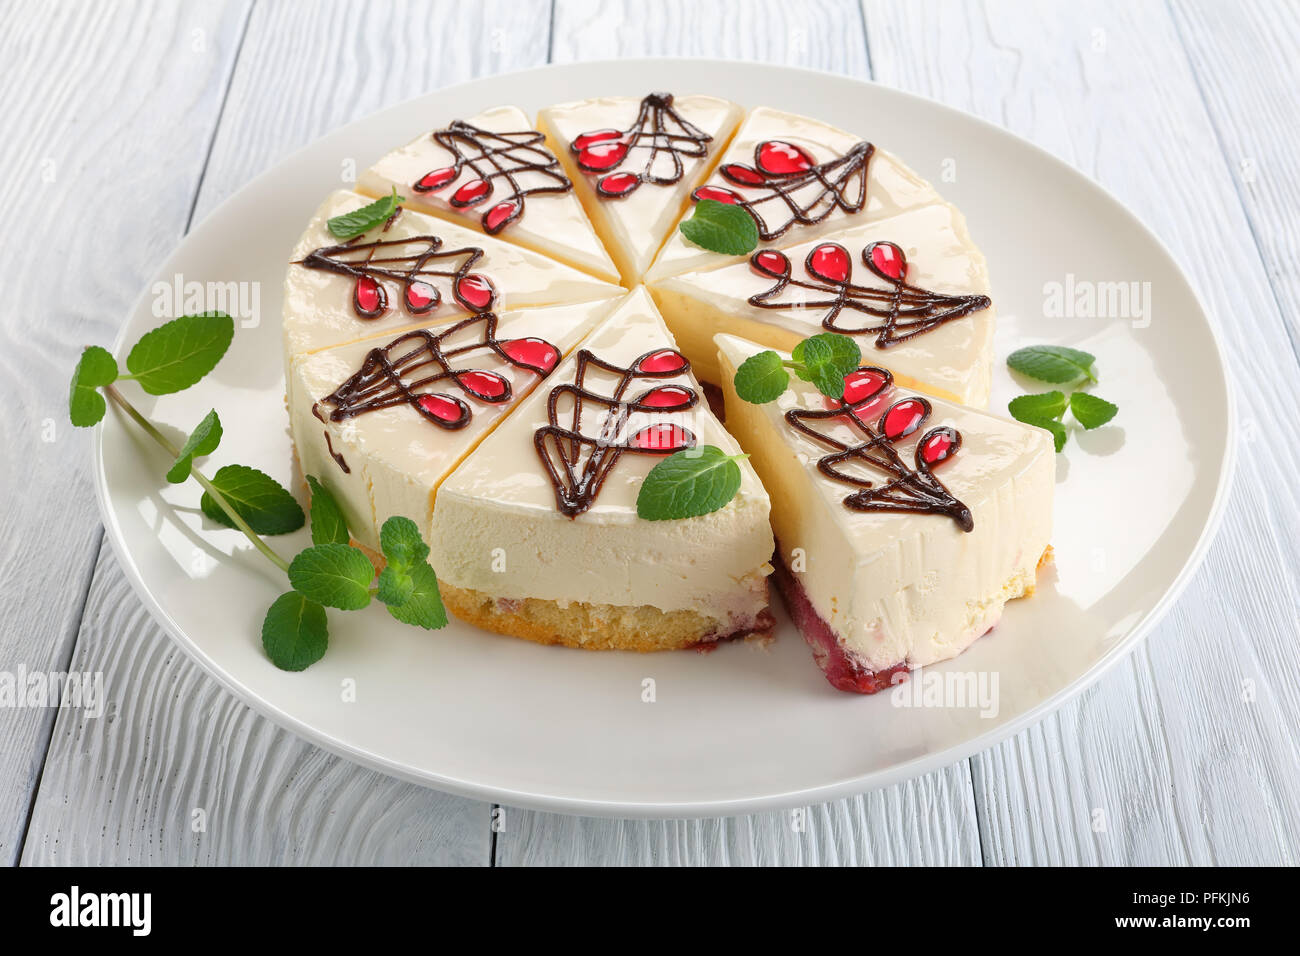 close-up of delicious ornately decorated with chocolate and jelly cheesecake with bottom layer consists of sponge cake with berry sauce, on white plat - Stock Image